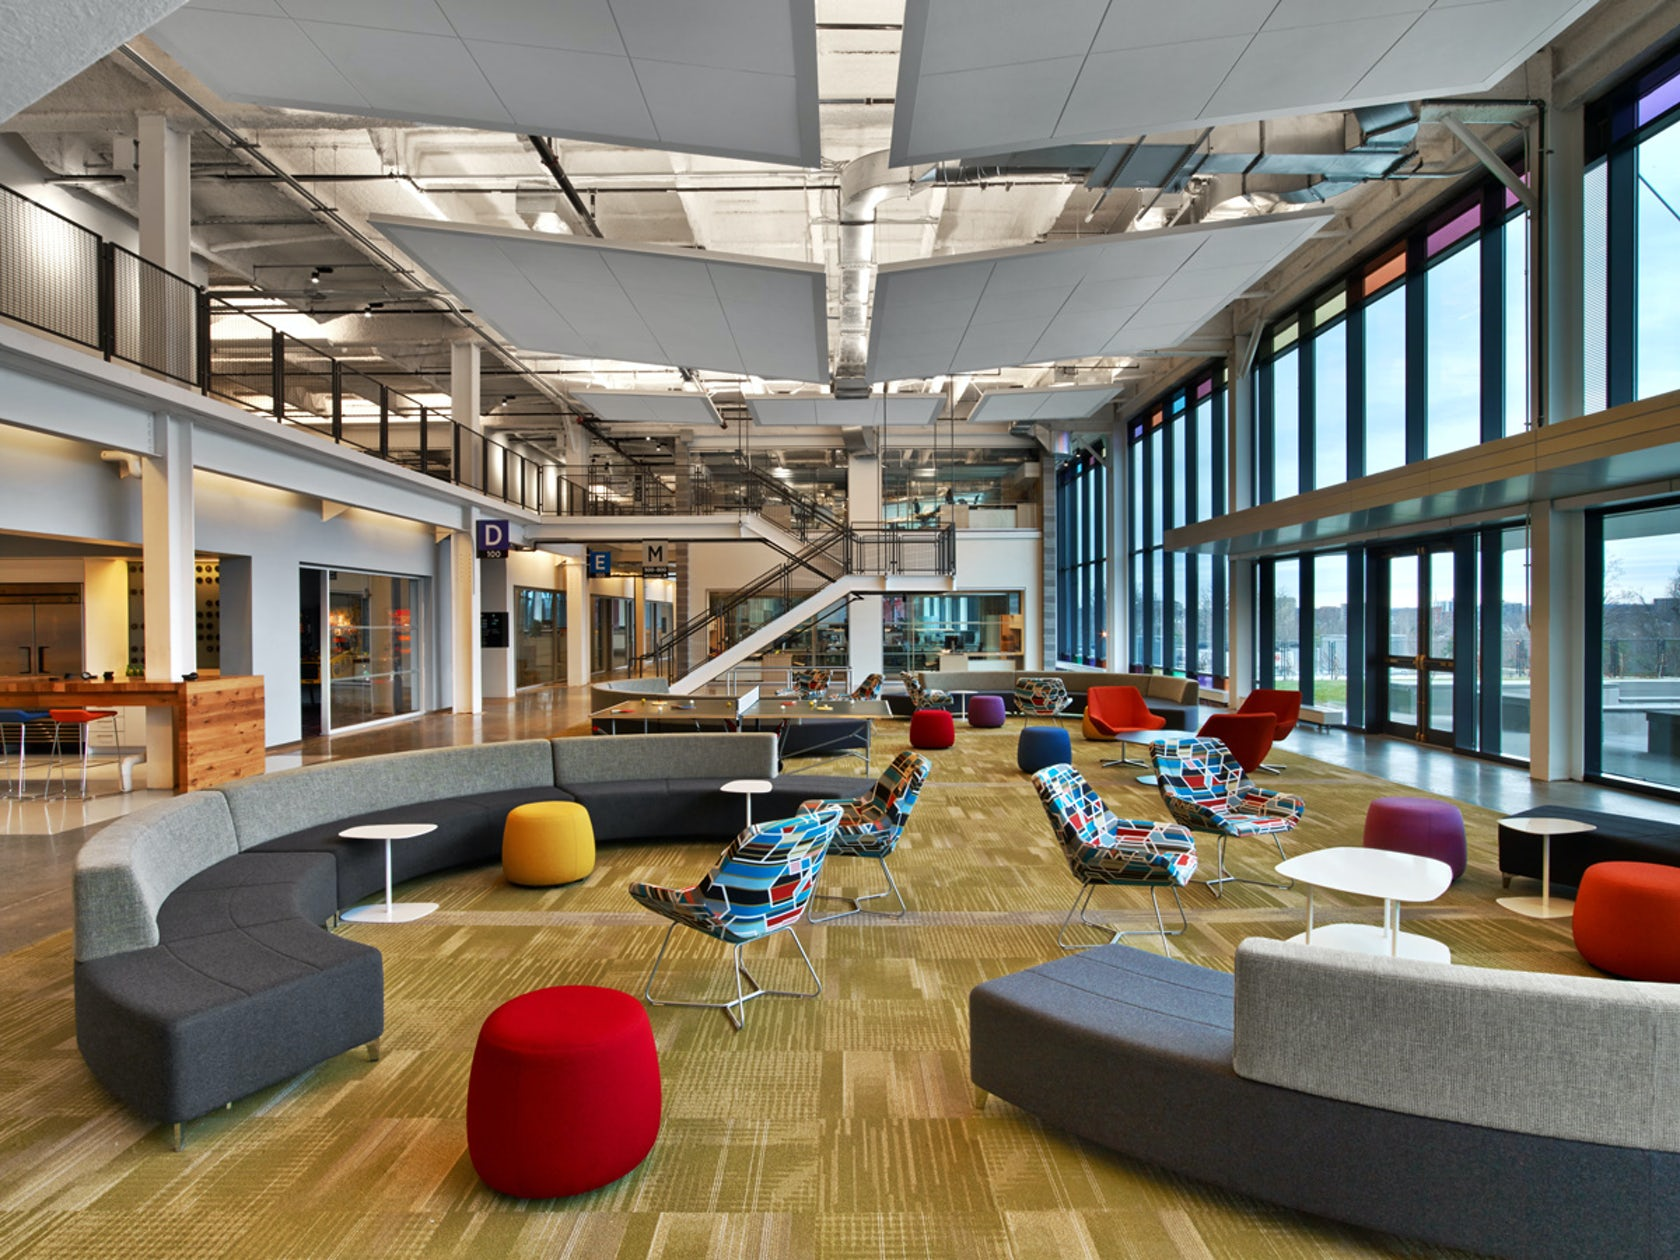 Nbc sports group architizer for Interior design agency new york